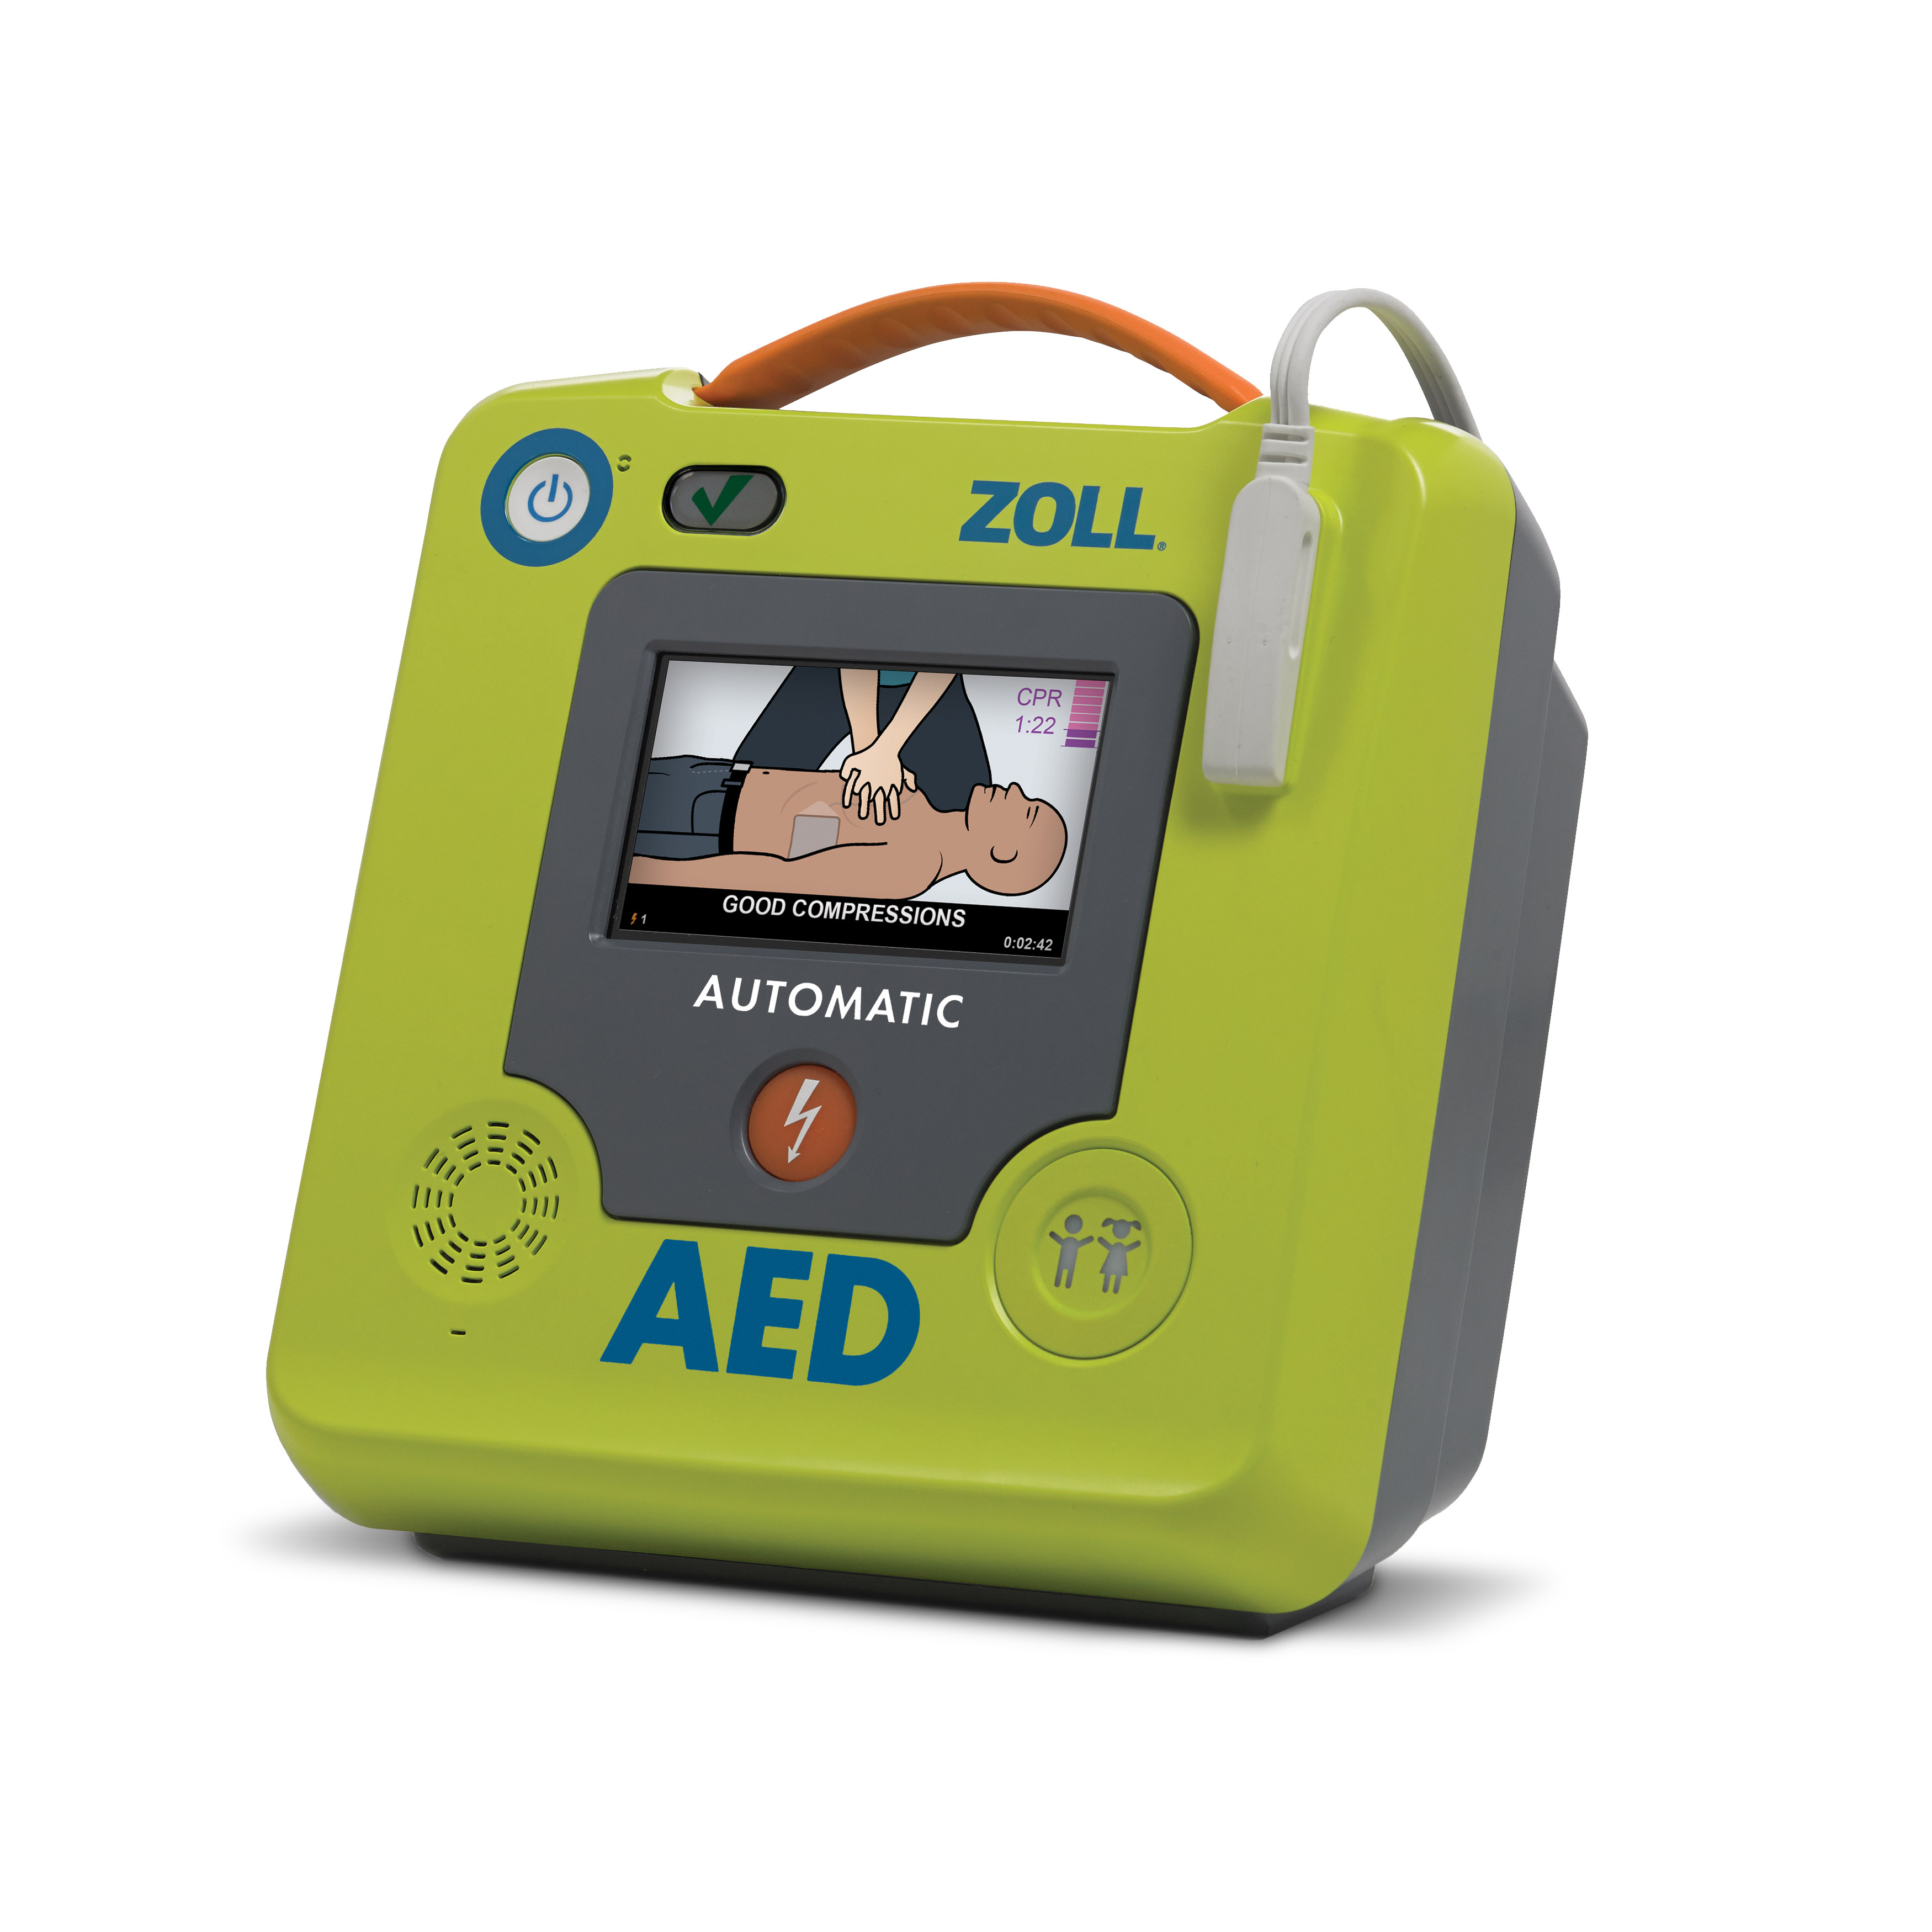 how to make a model of a defibrillator